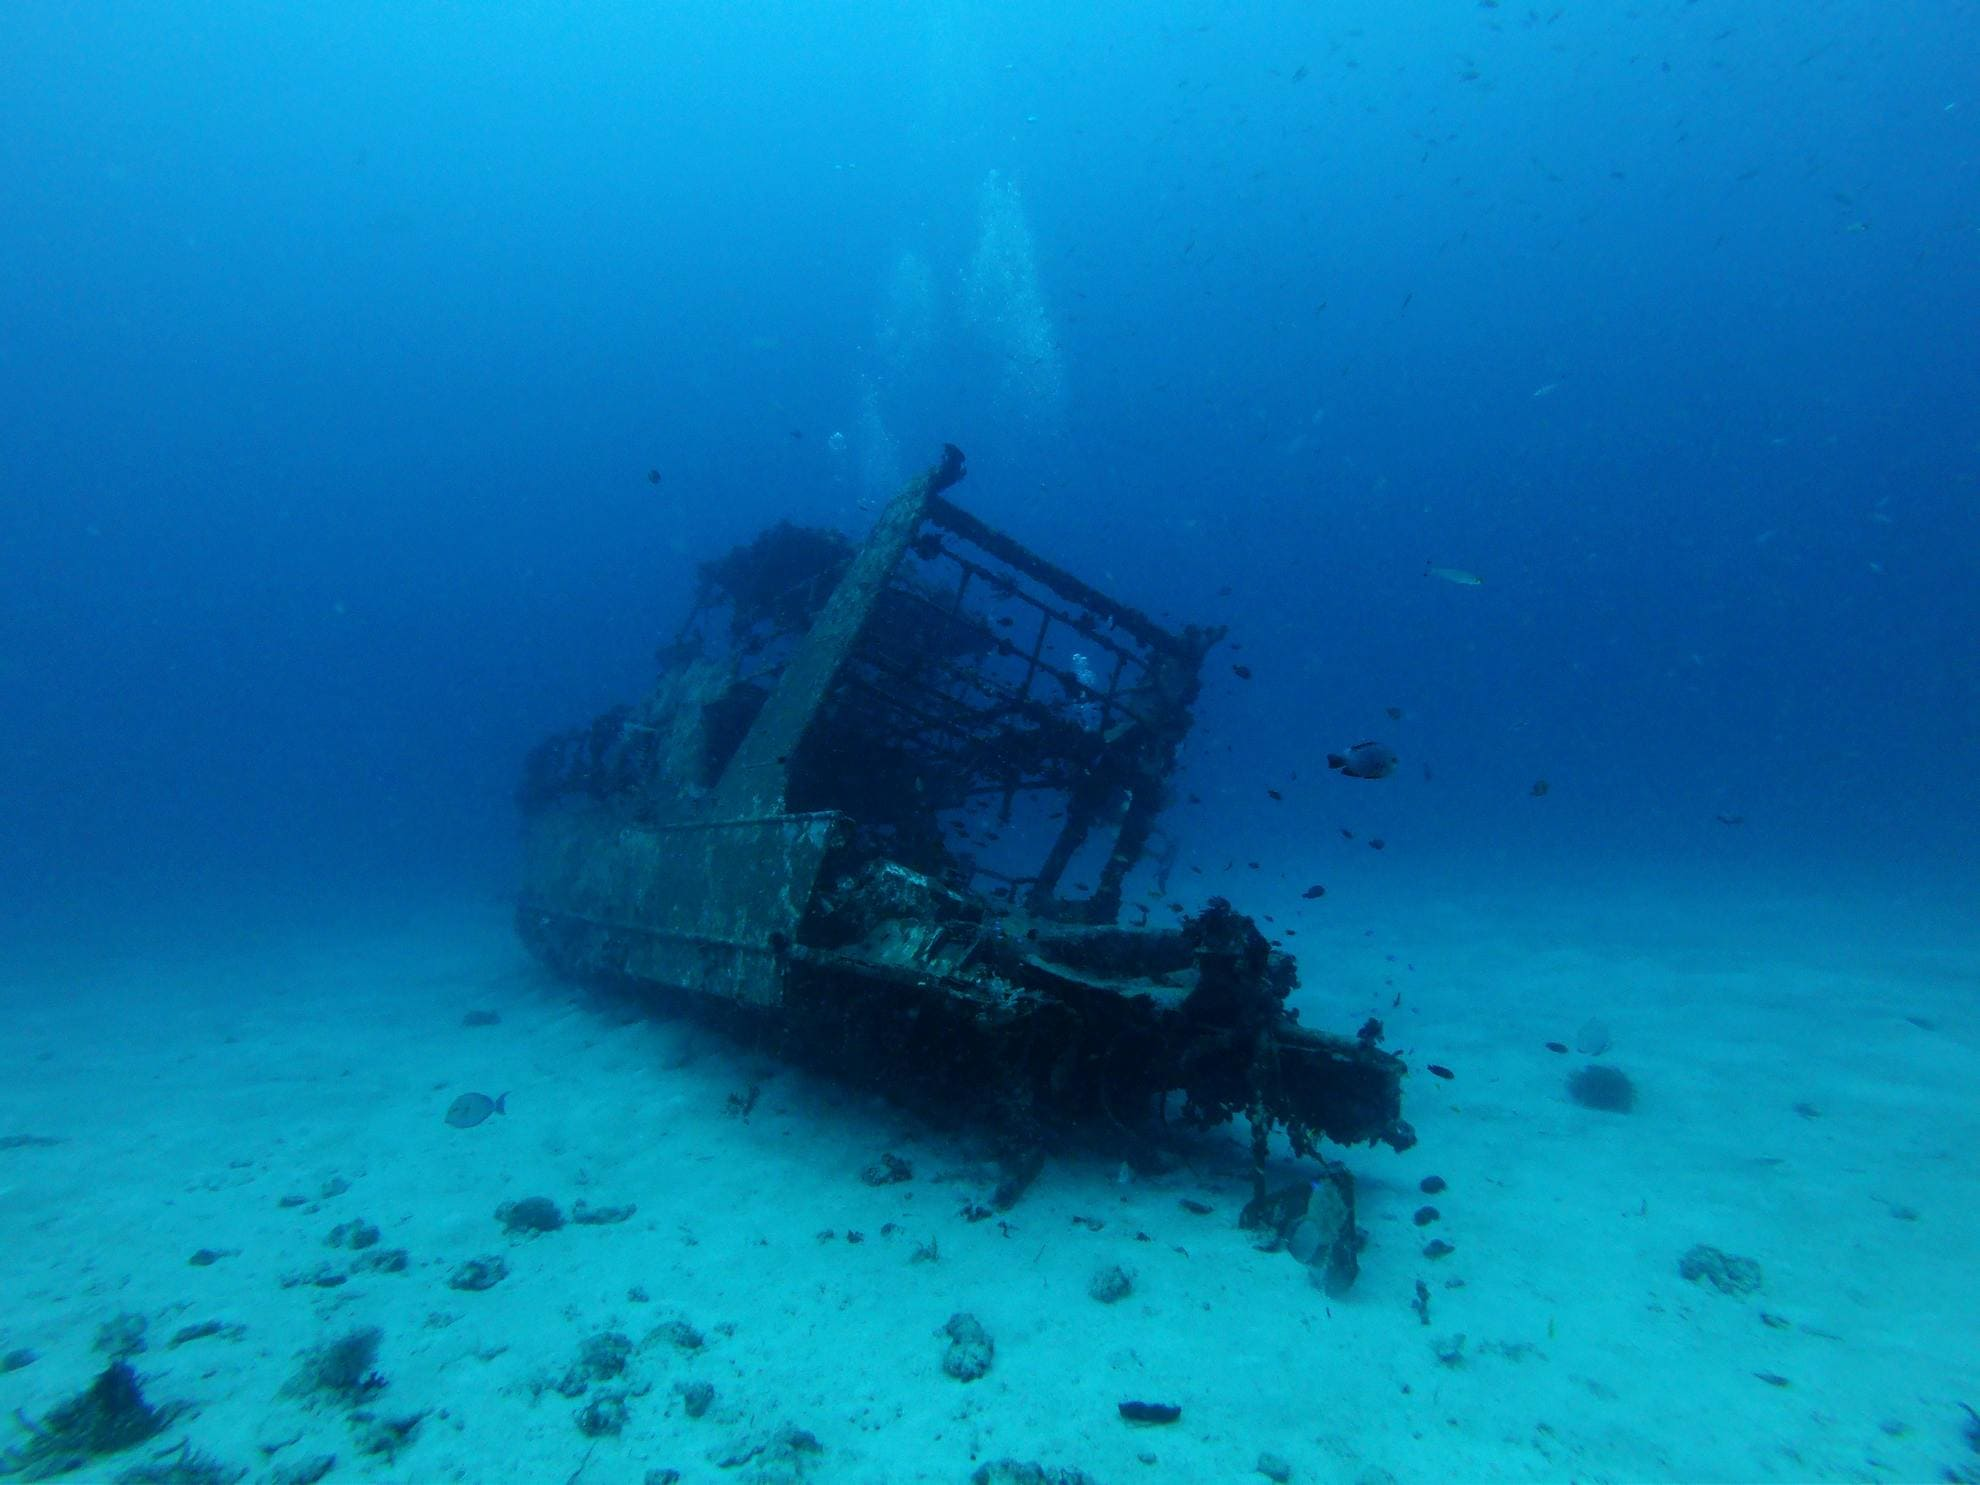 A wreck on the sandy bottom in front of Bohol Island, the Philippines